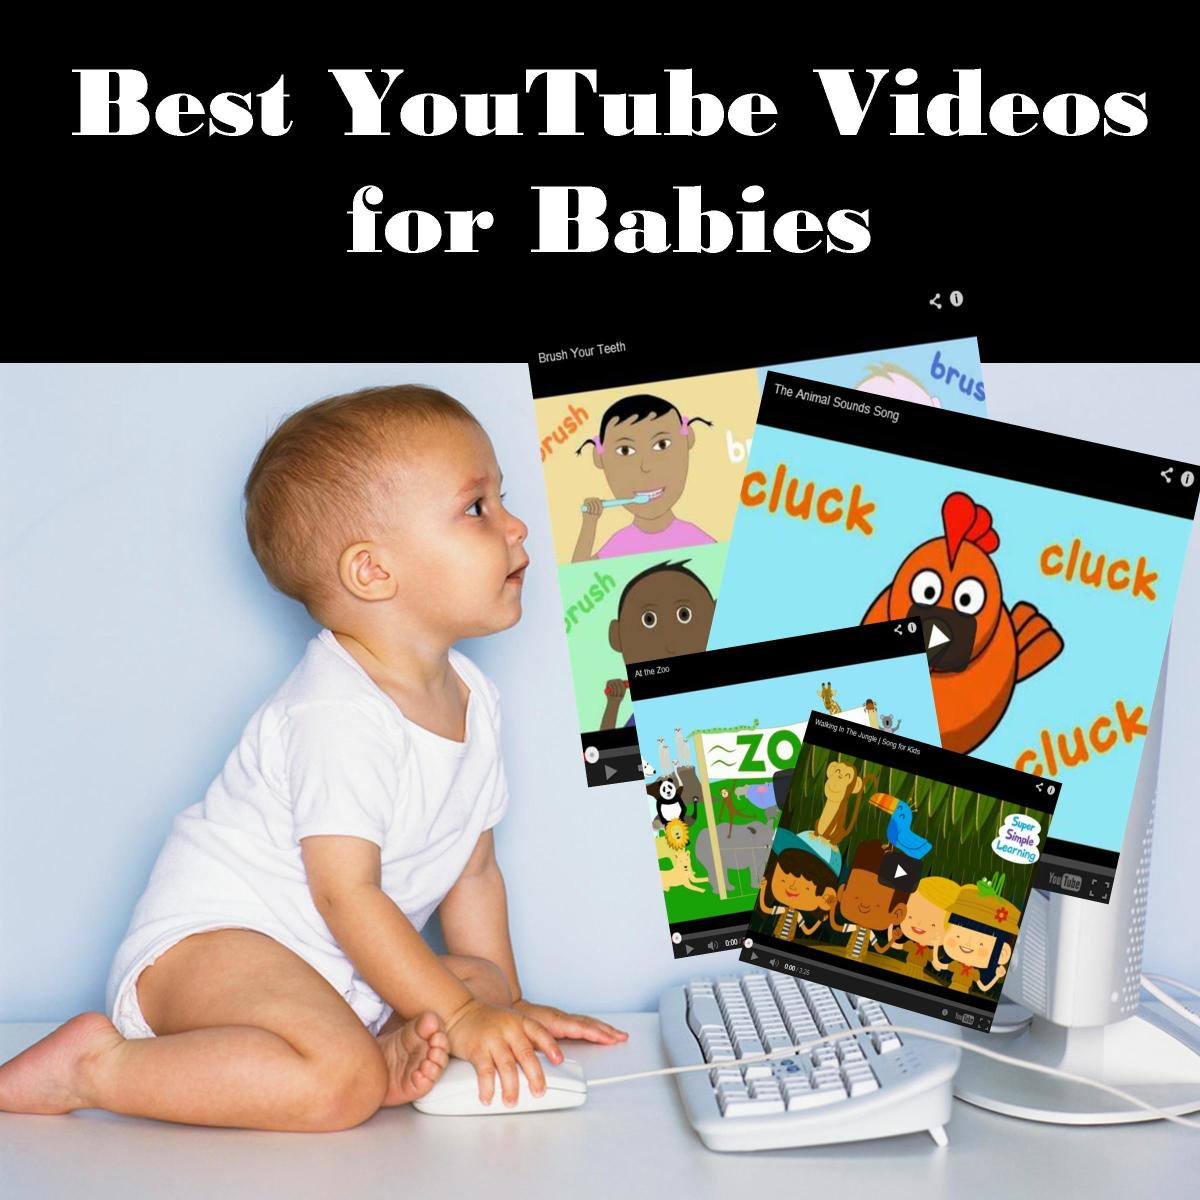 Many of the popular videos for babies on Youtube are getting millions, even hundreds of millions of views!